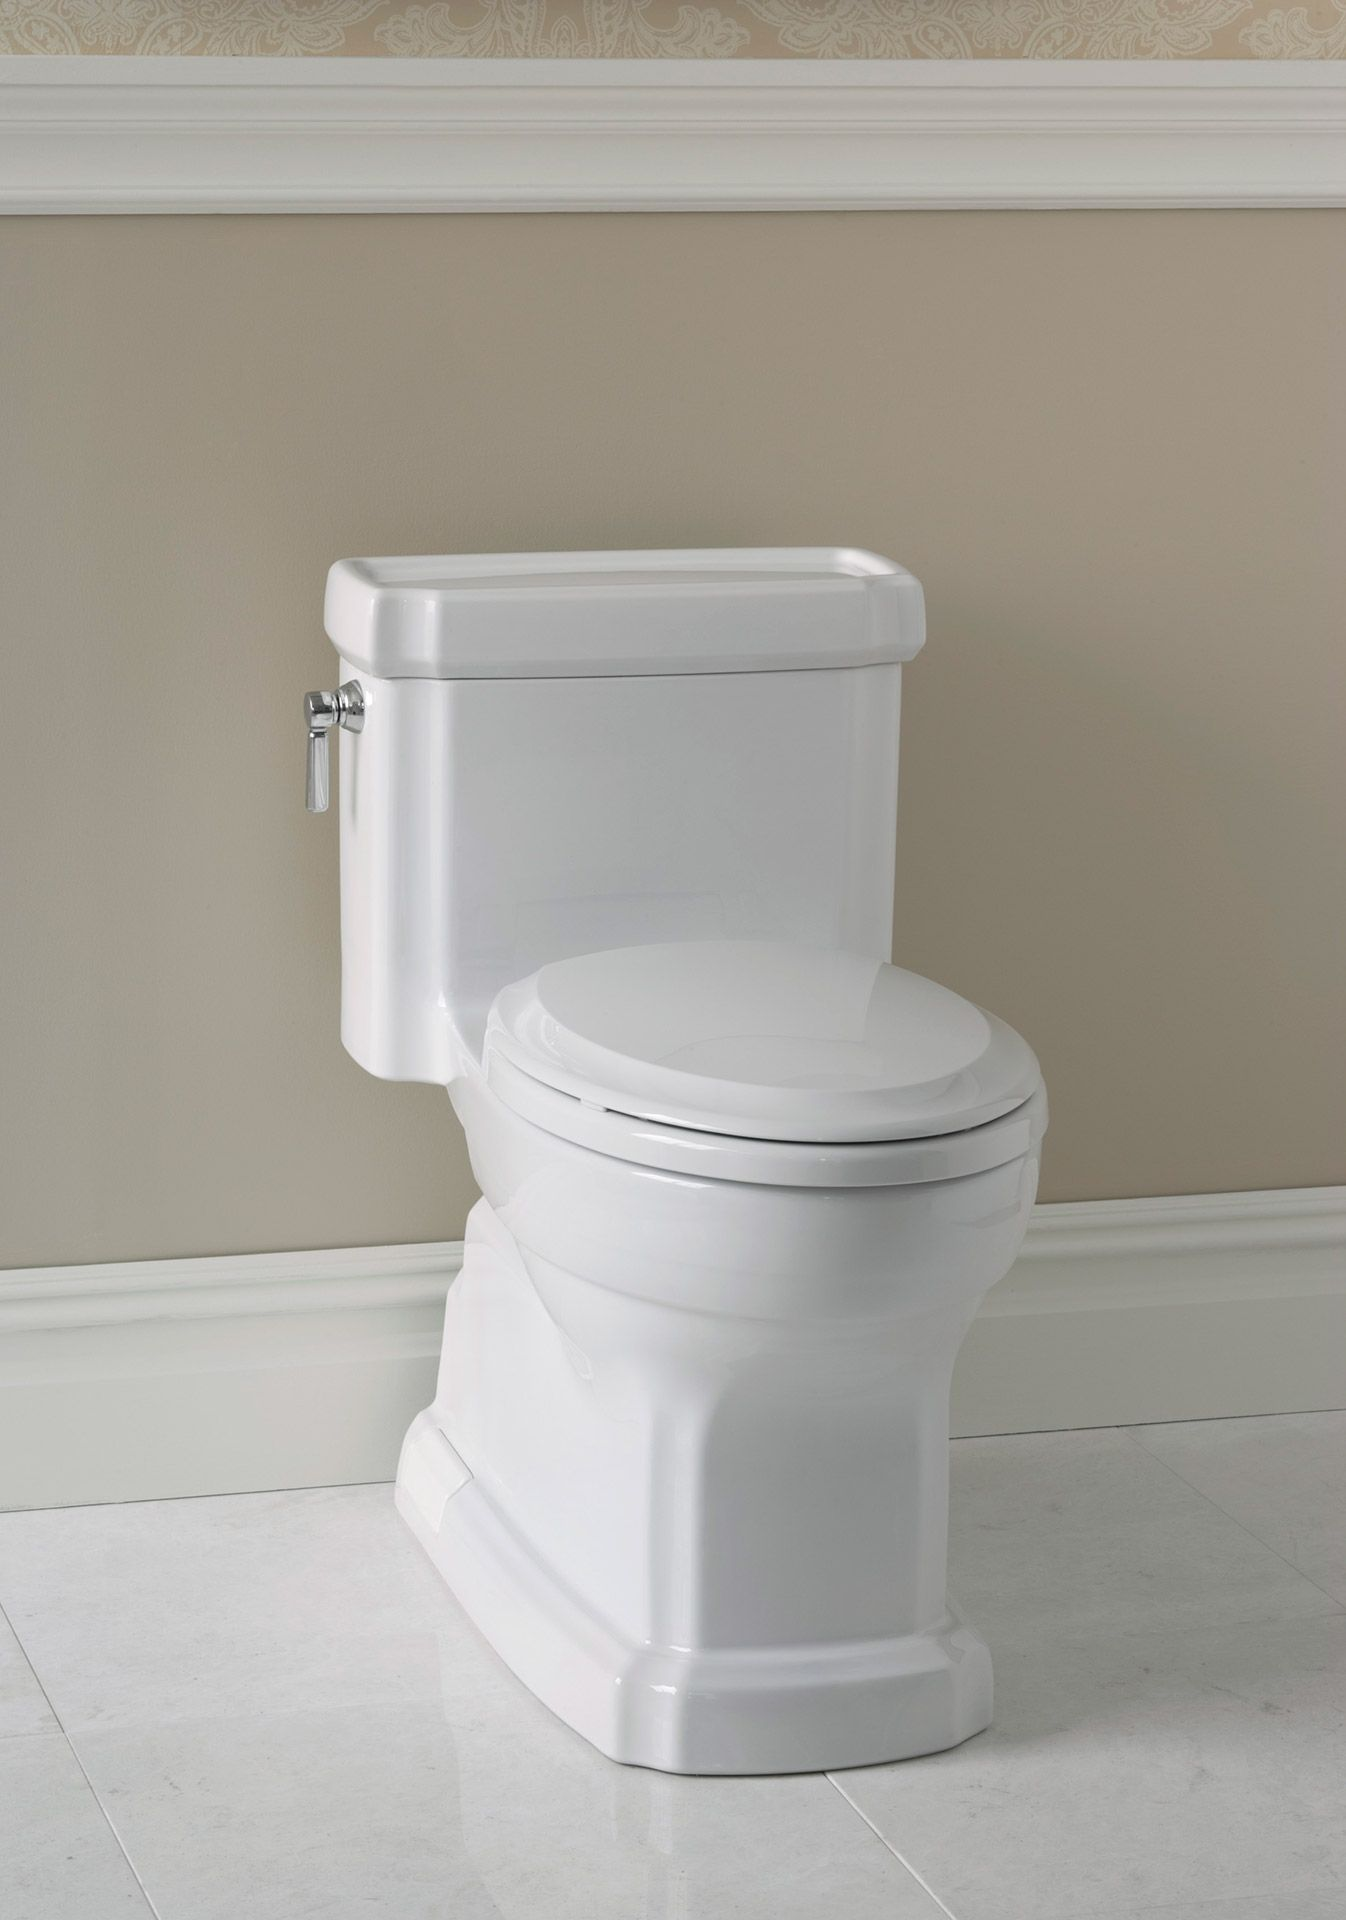 Eco Guinevere® One-Piece Toilet, 1.28 GPF, Elongated Bowl - TotoUSA.com